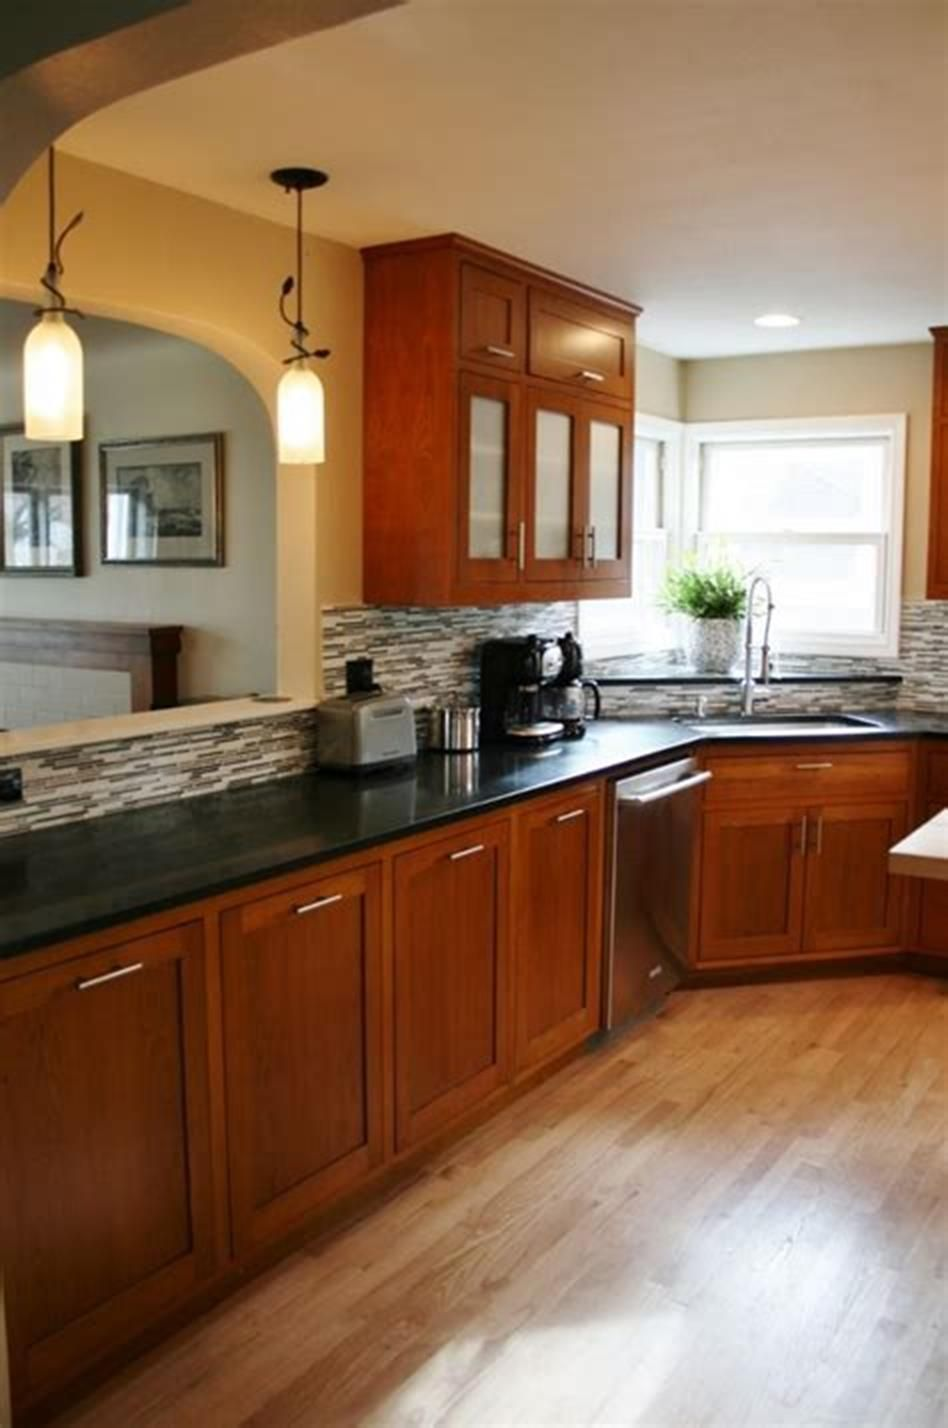 46 Most Popular Kitchen Color Schemes Trends 2019 | Cherry ...